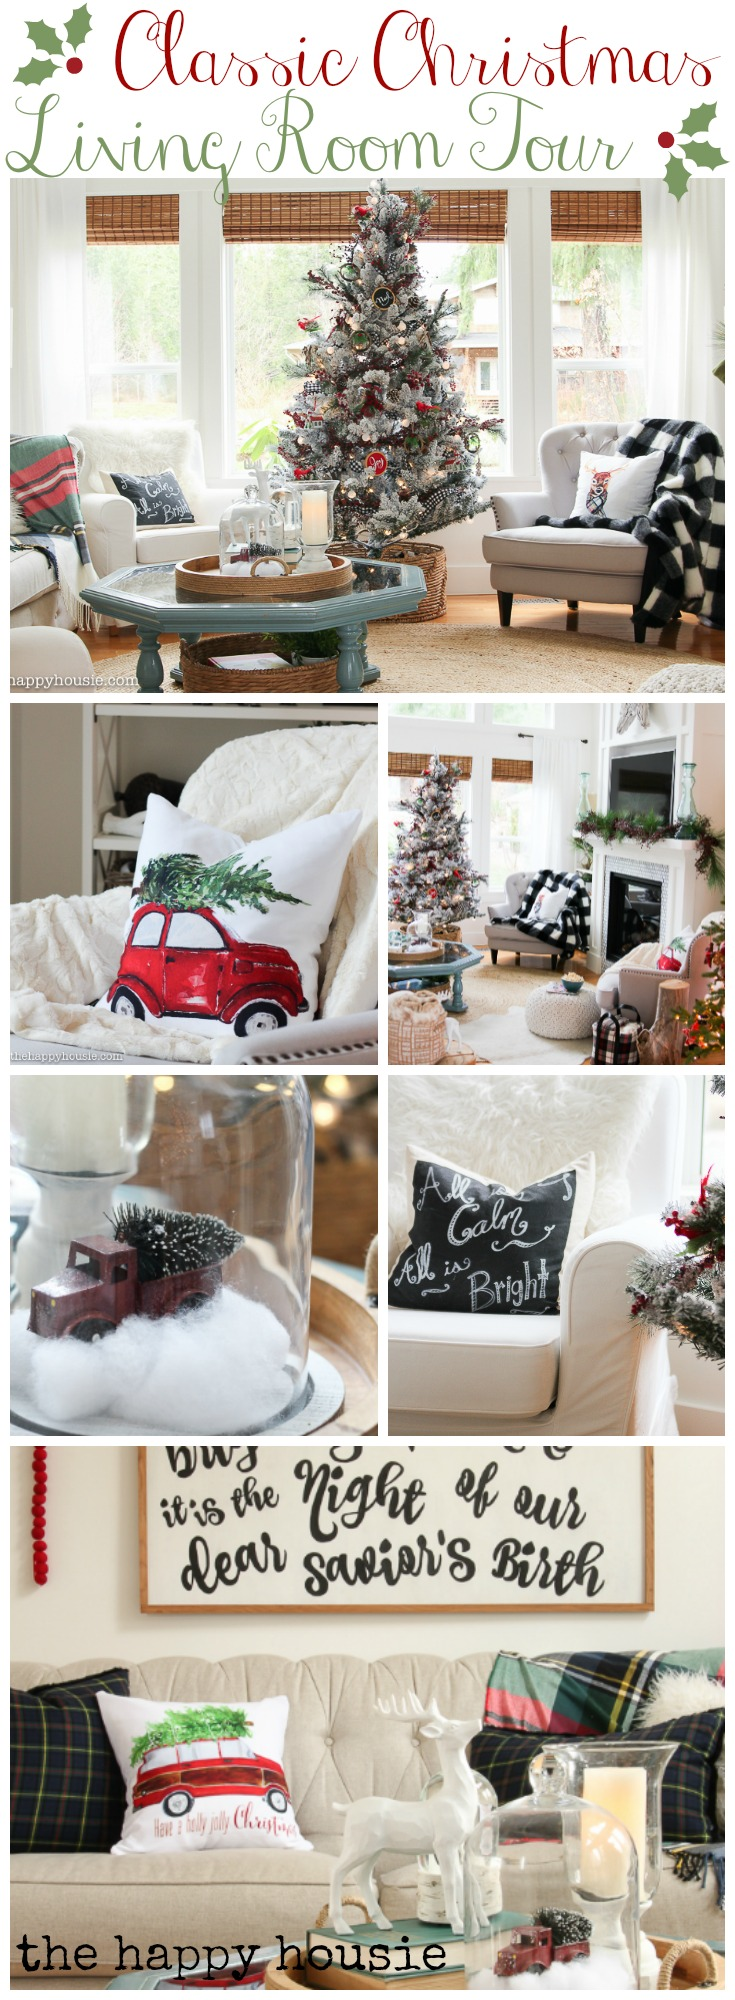 Classic-Christmas-Living-Room-Tour-for-the-All-Through-the-House-christmas-tour-series-at-the-happy-housie.jpg